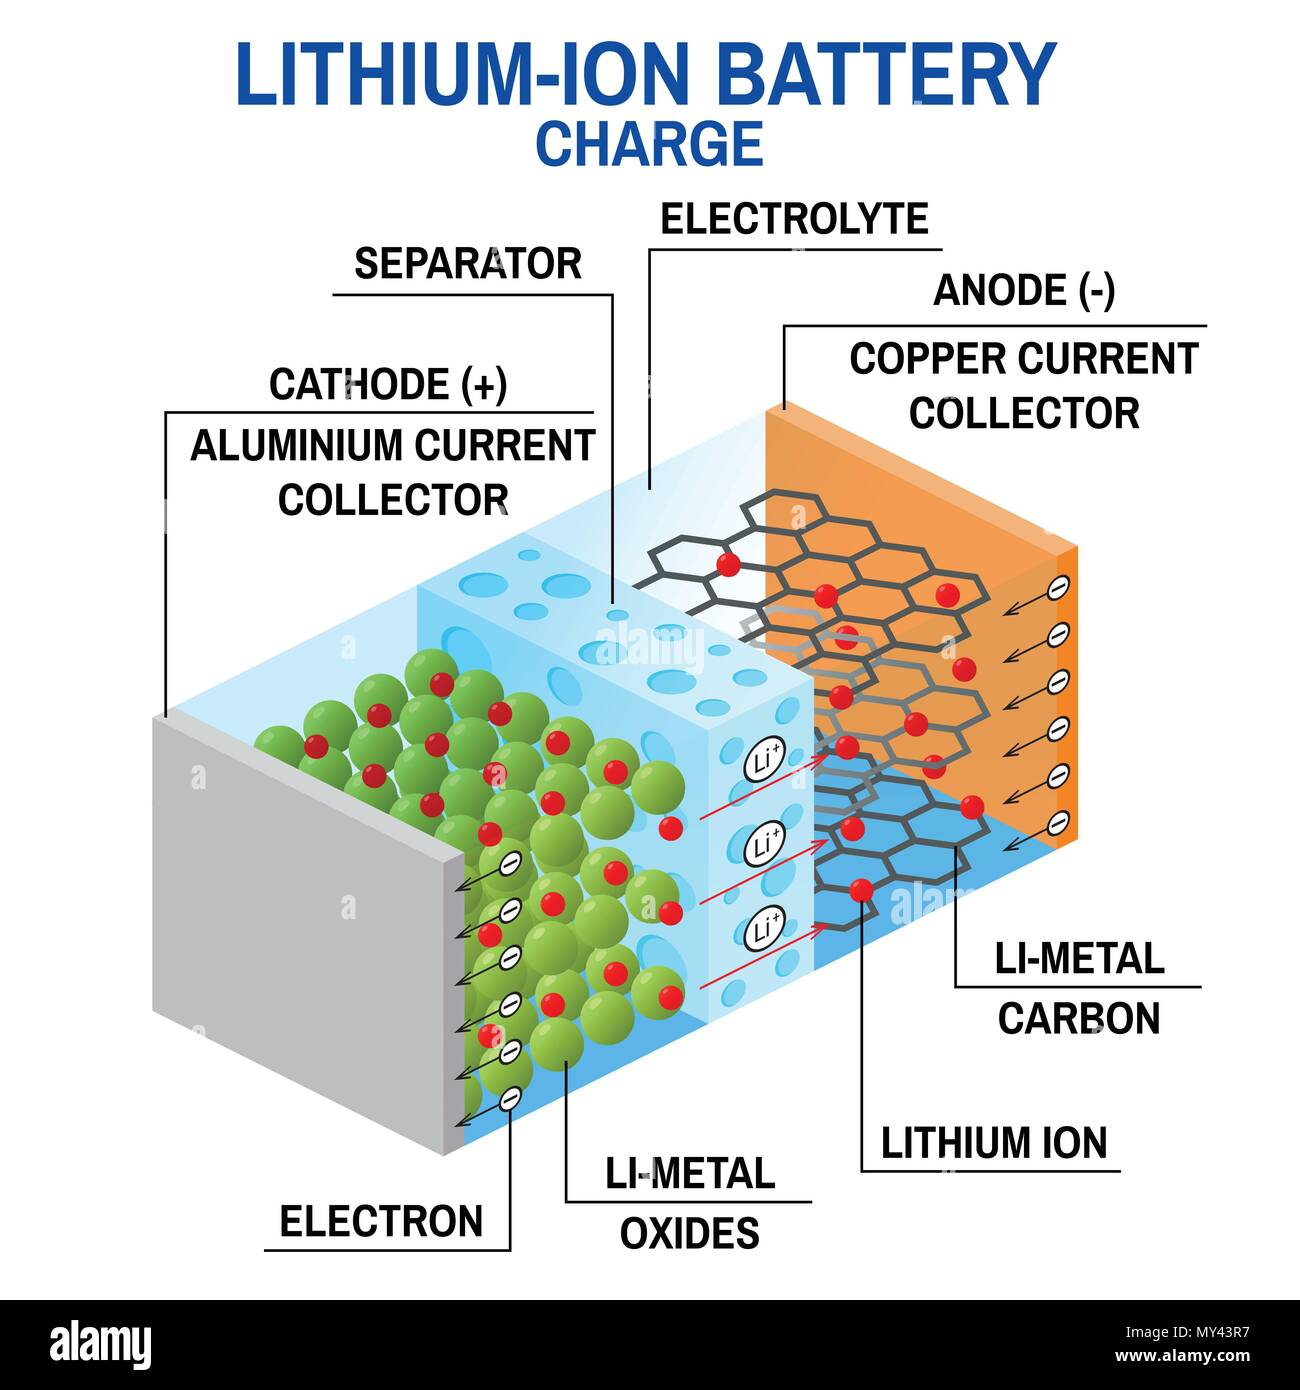 Li-ion battery diagram. Vector illustration. Rechargeable battery in which lithium ions move from the positive electrode to the negative electrode dur - Stock Image